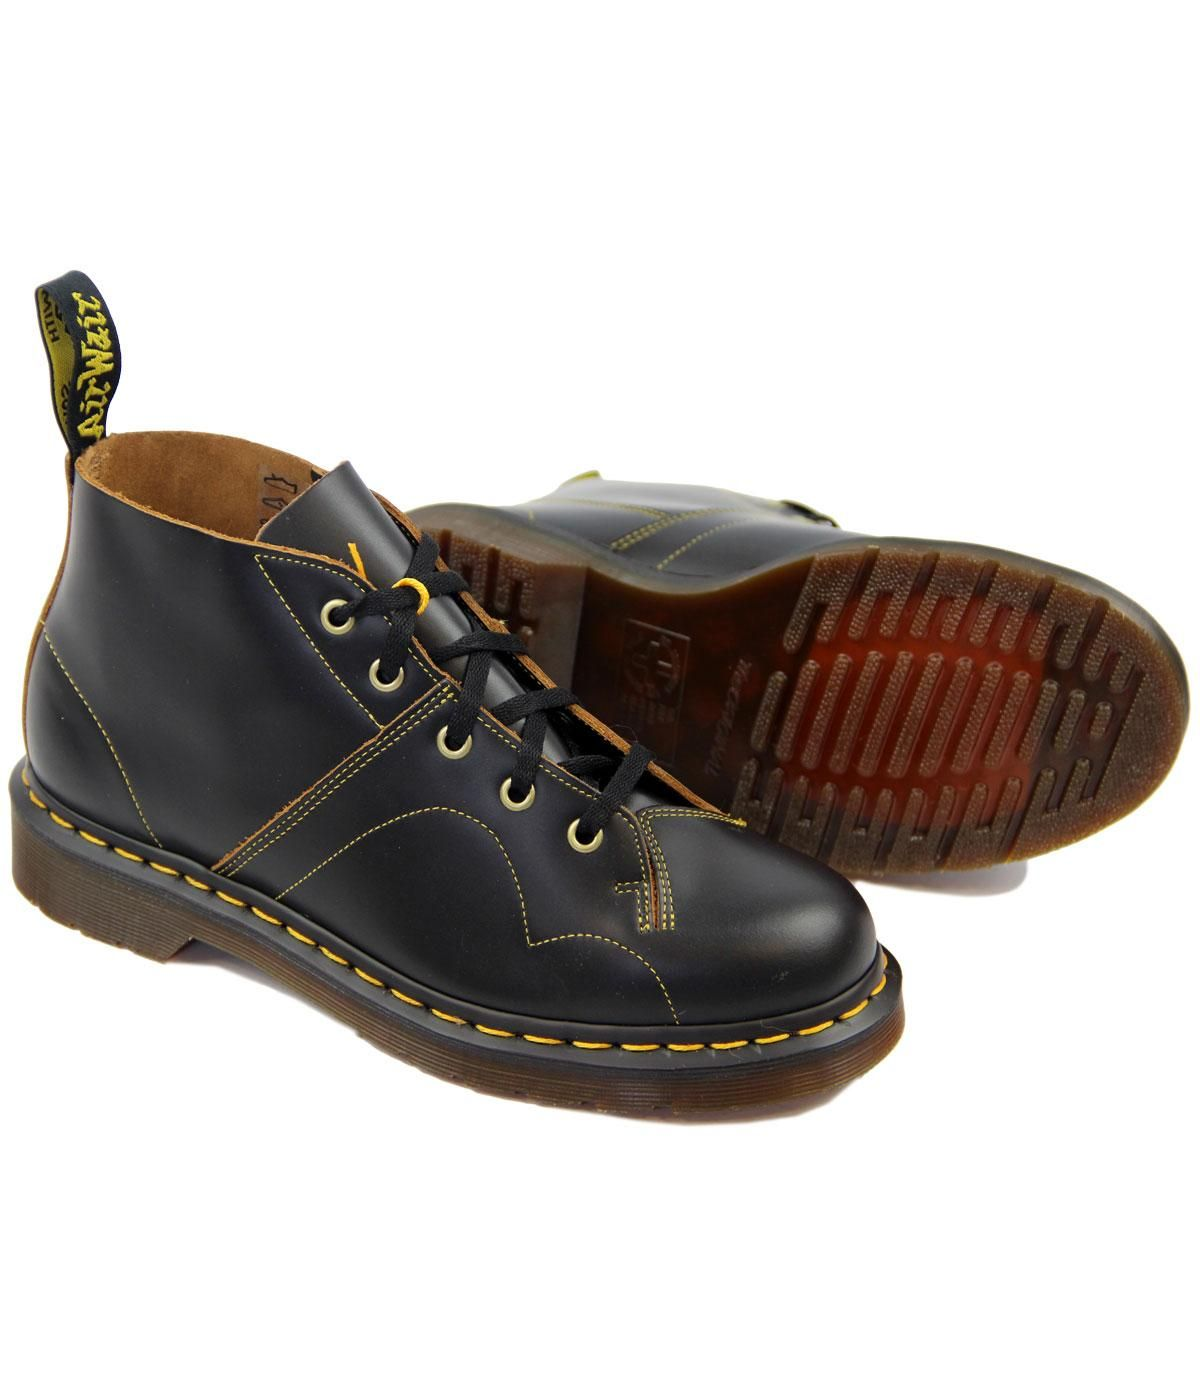 464535d01f4 Church DR MARTENS Retro 60 s Mod Monkey Boots in 2019